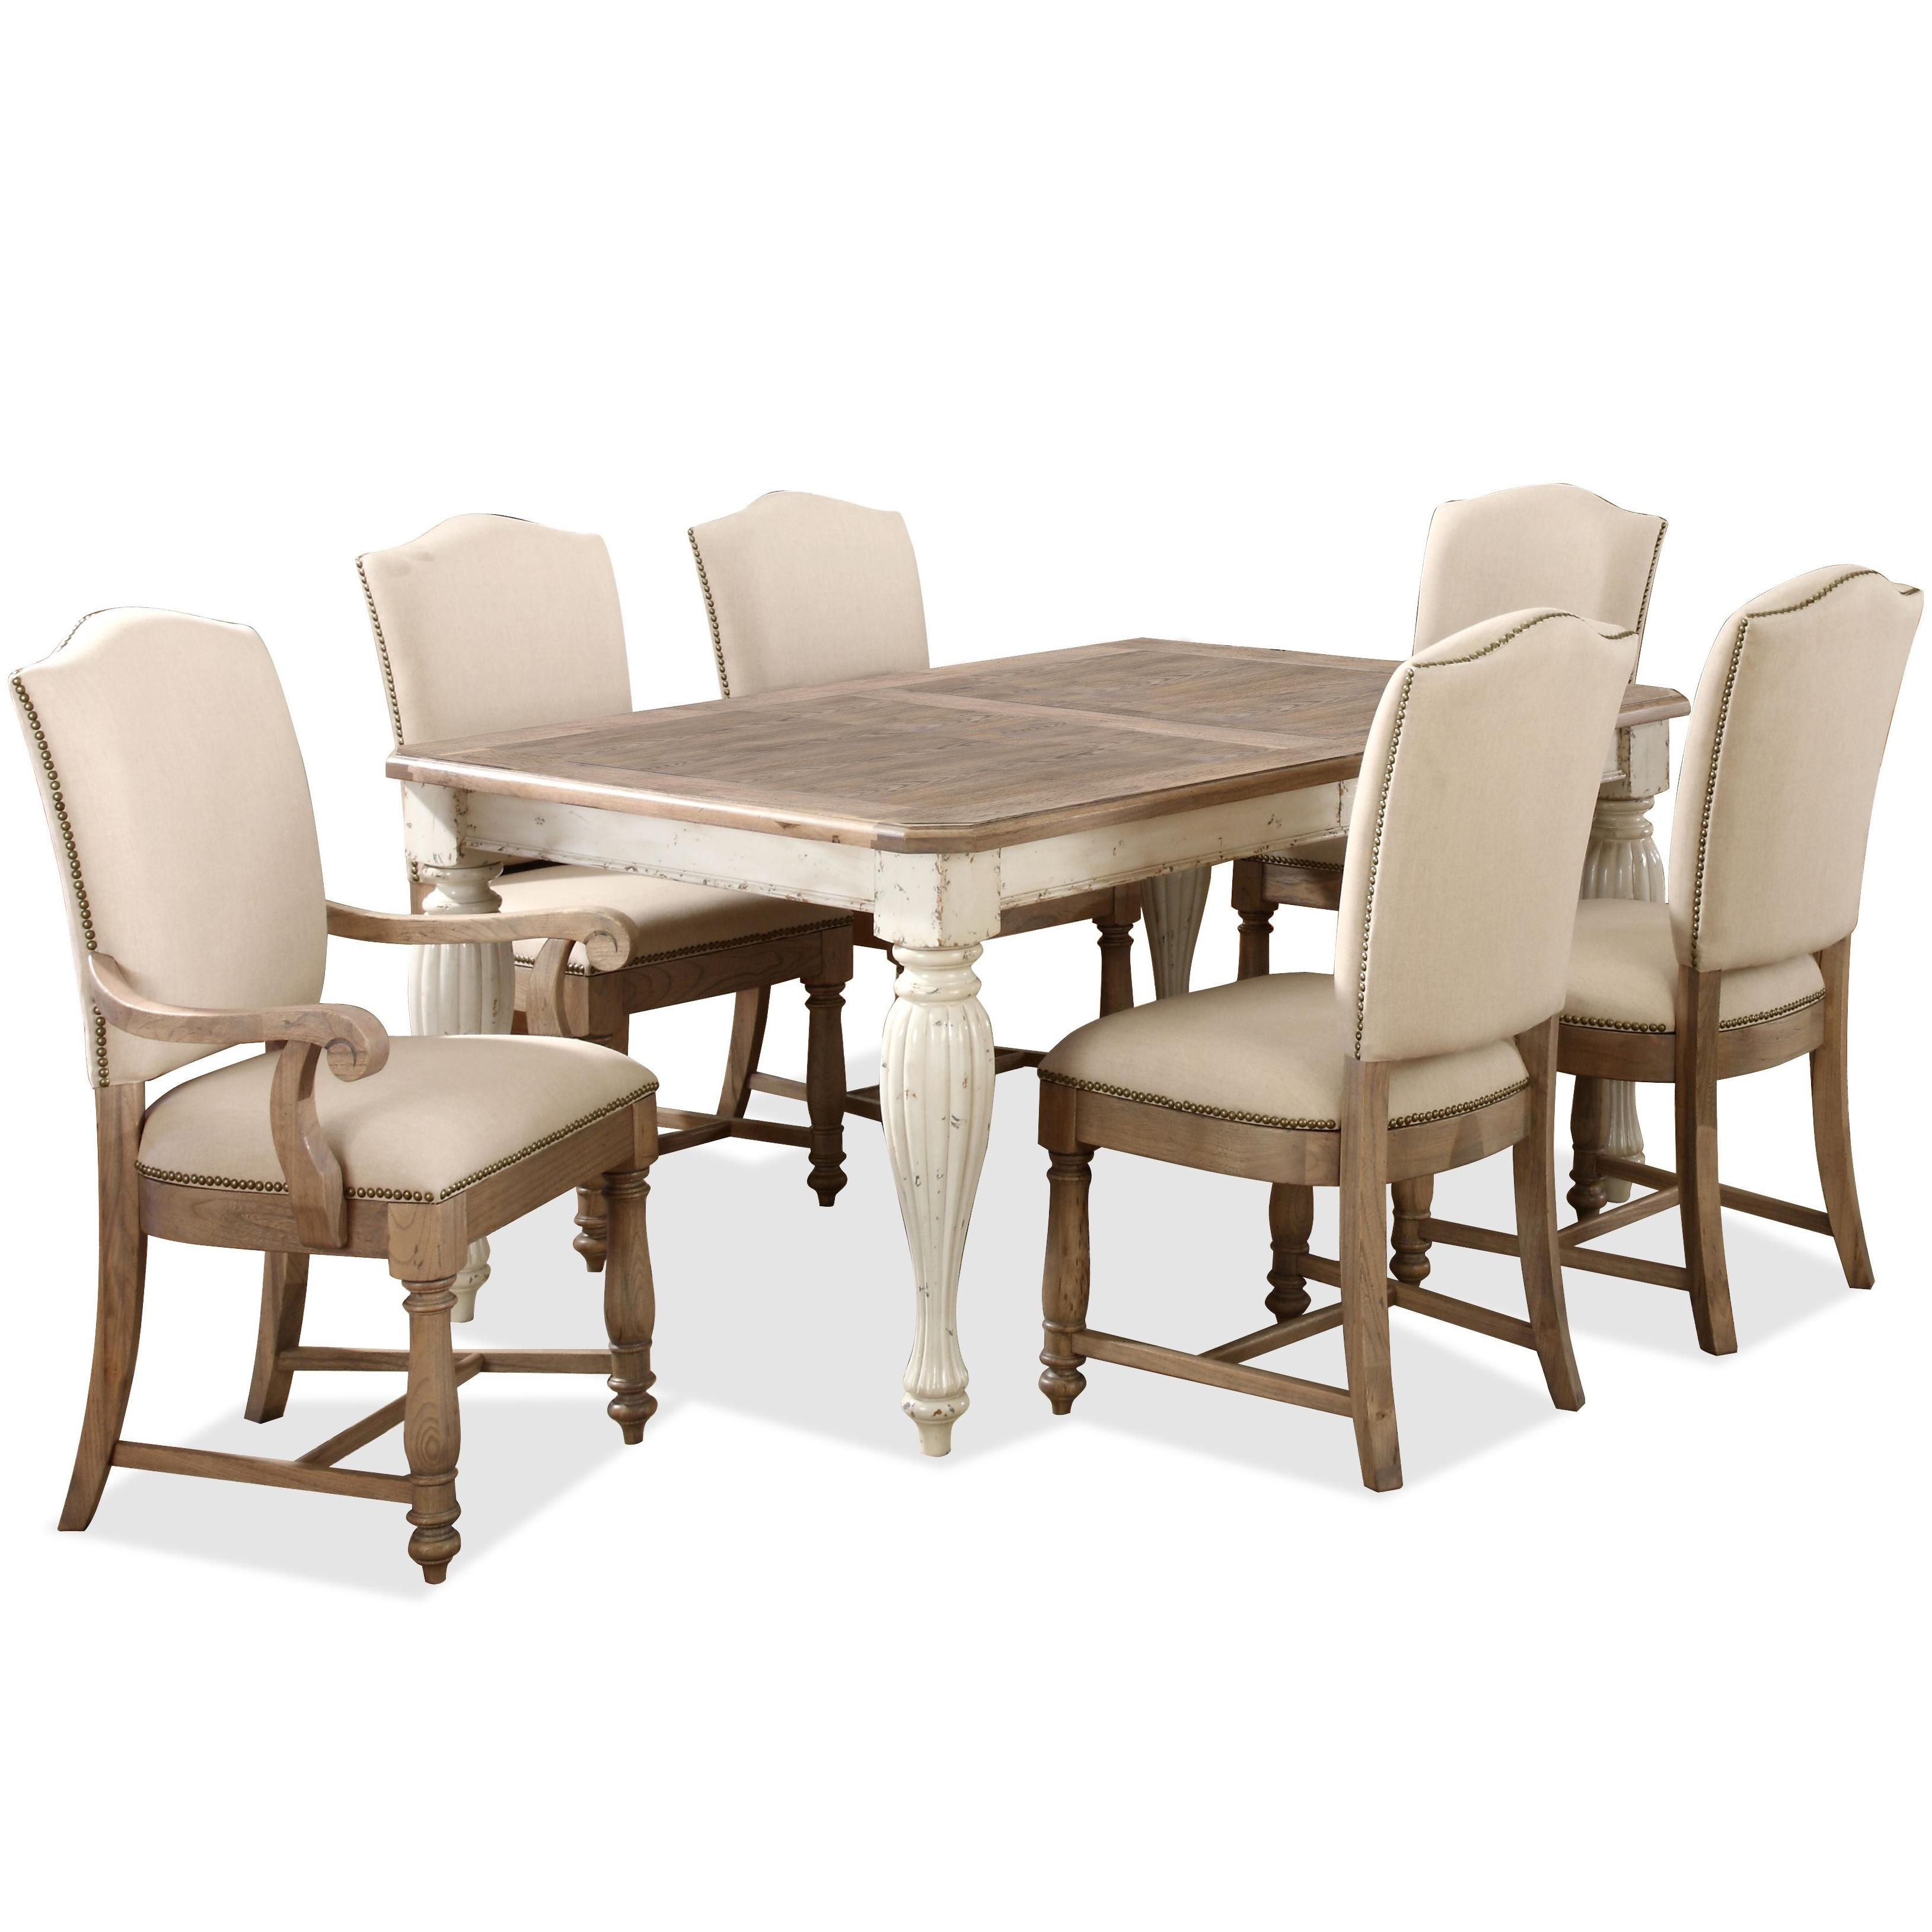 Riverside Furniture Coventry Two Tone Rectangular Leg Dining Table With  Leaf   Jacksonville Furniture Mart   Dining Room Table Jacksonville,  Gainesville, ... Part 93